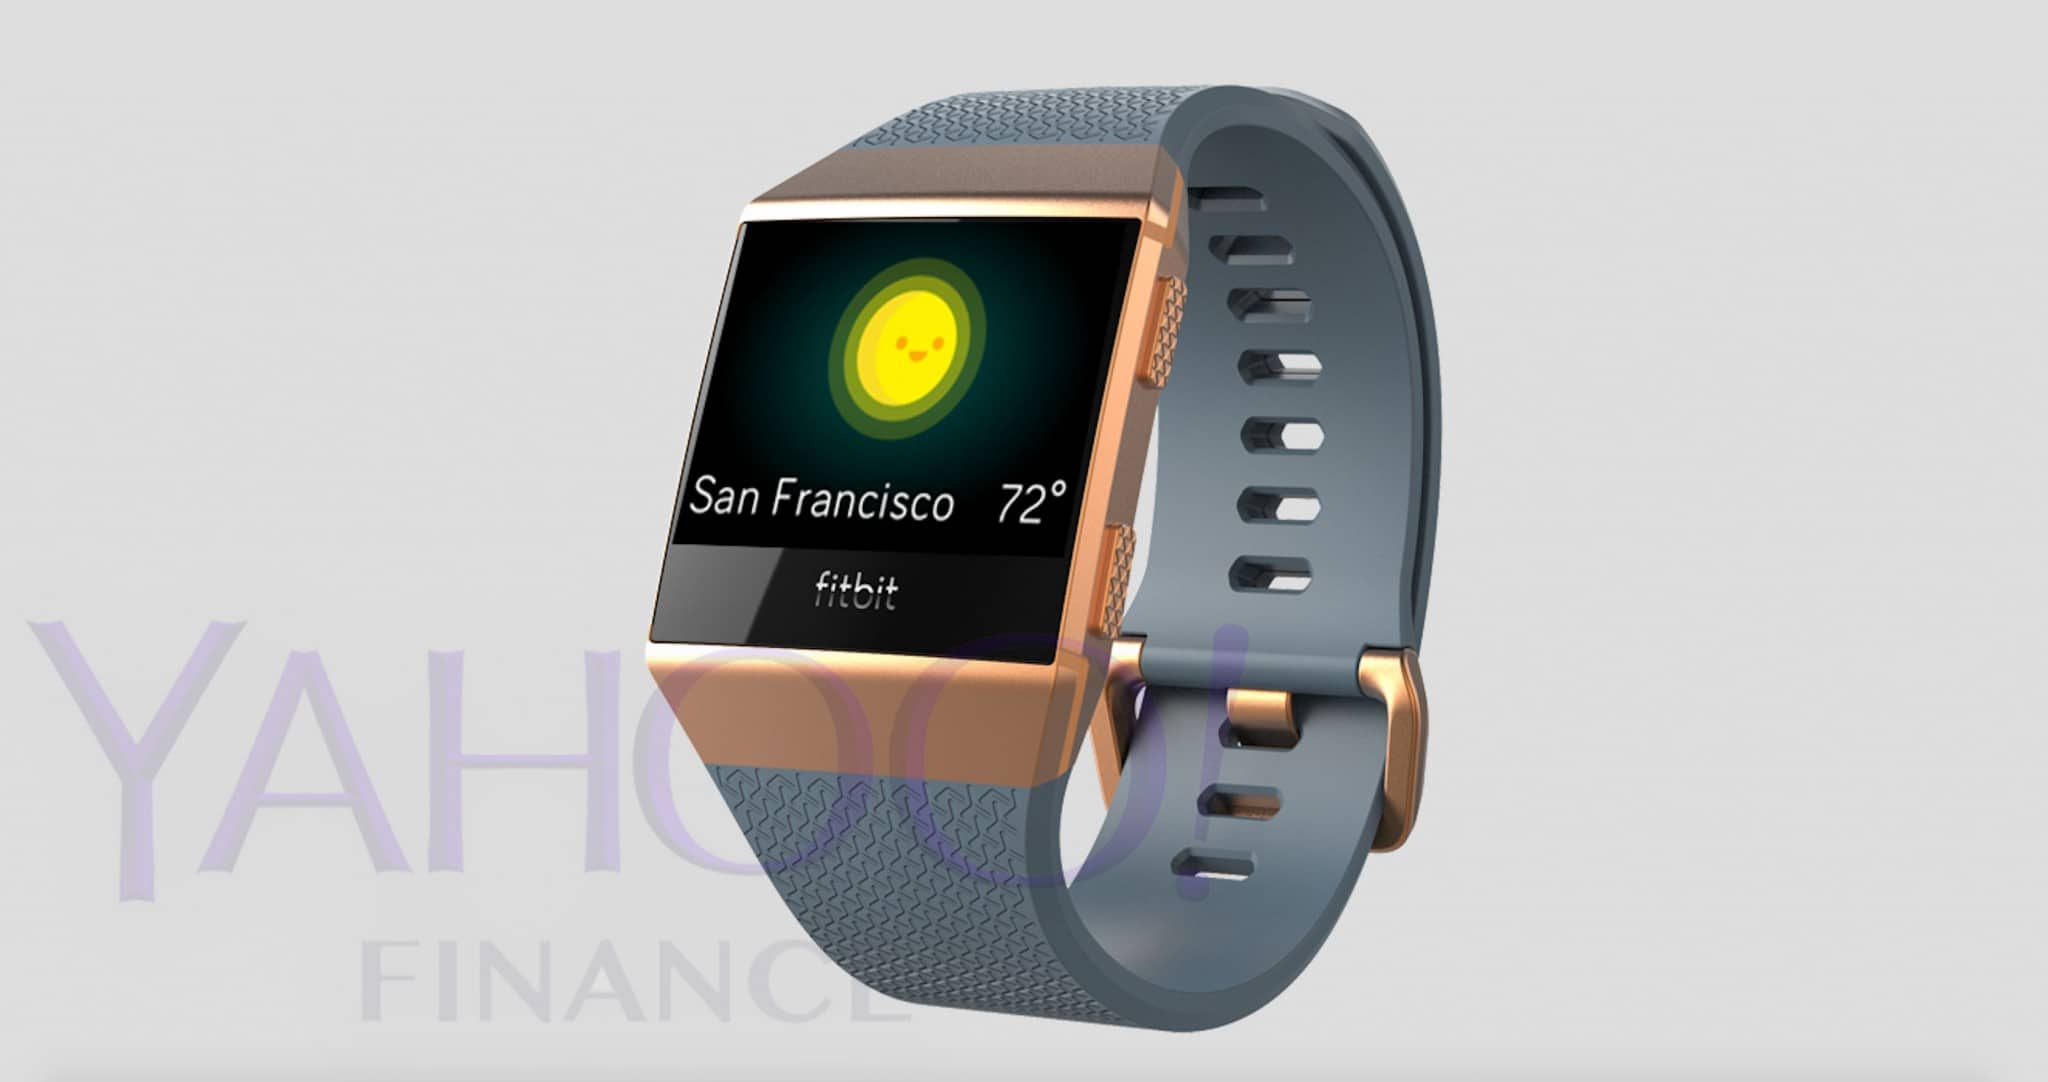 leaked photos give us first glimpse of fitbit s new smartwatch 2 - Fitbit preparing a slew of new products for 2018